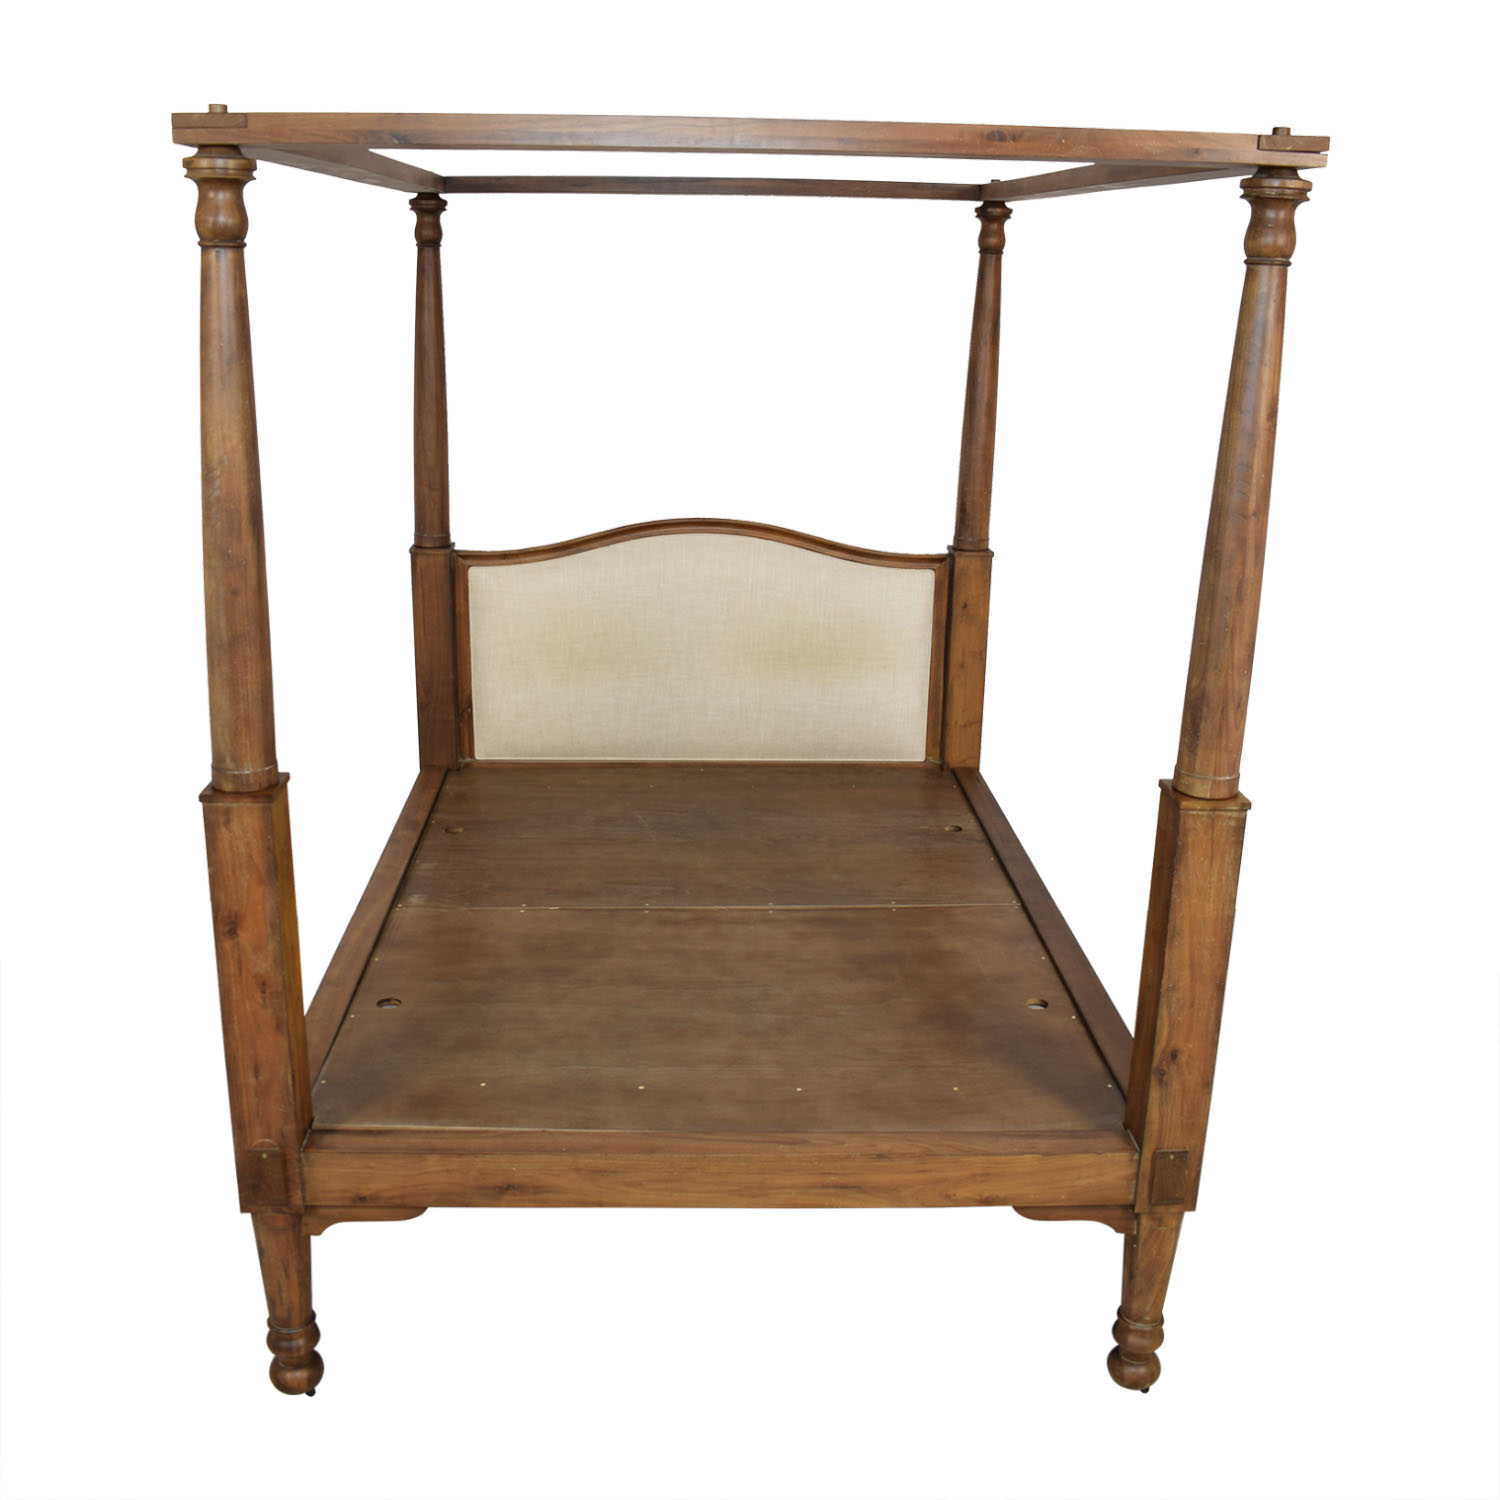 Restoration Hardware Restoration Hardware Early 19th C. American 4-Poster Queen Bed dimensions